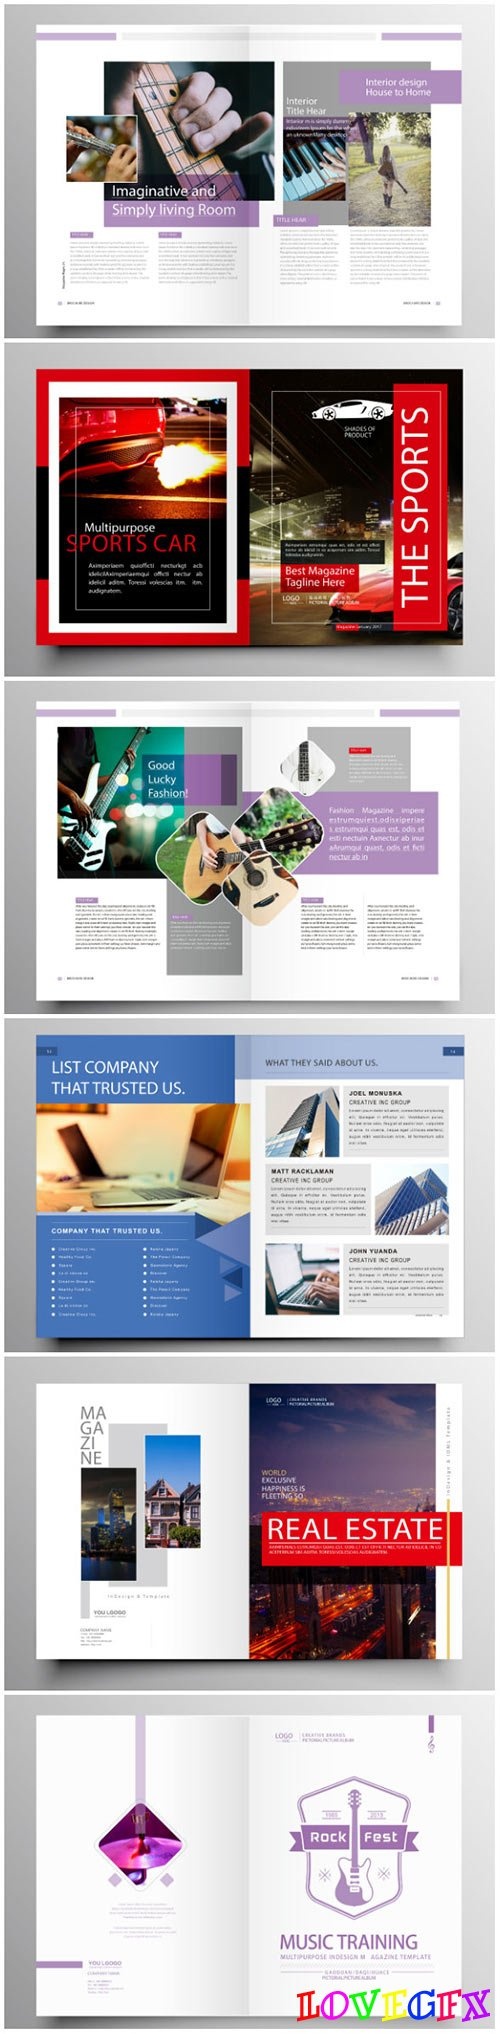 Brochure template vector layout design, corporate business annual report, magazine, flyer mockup # 197